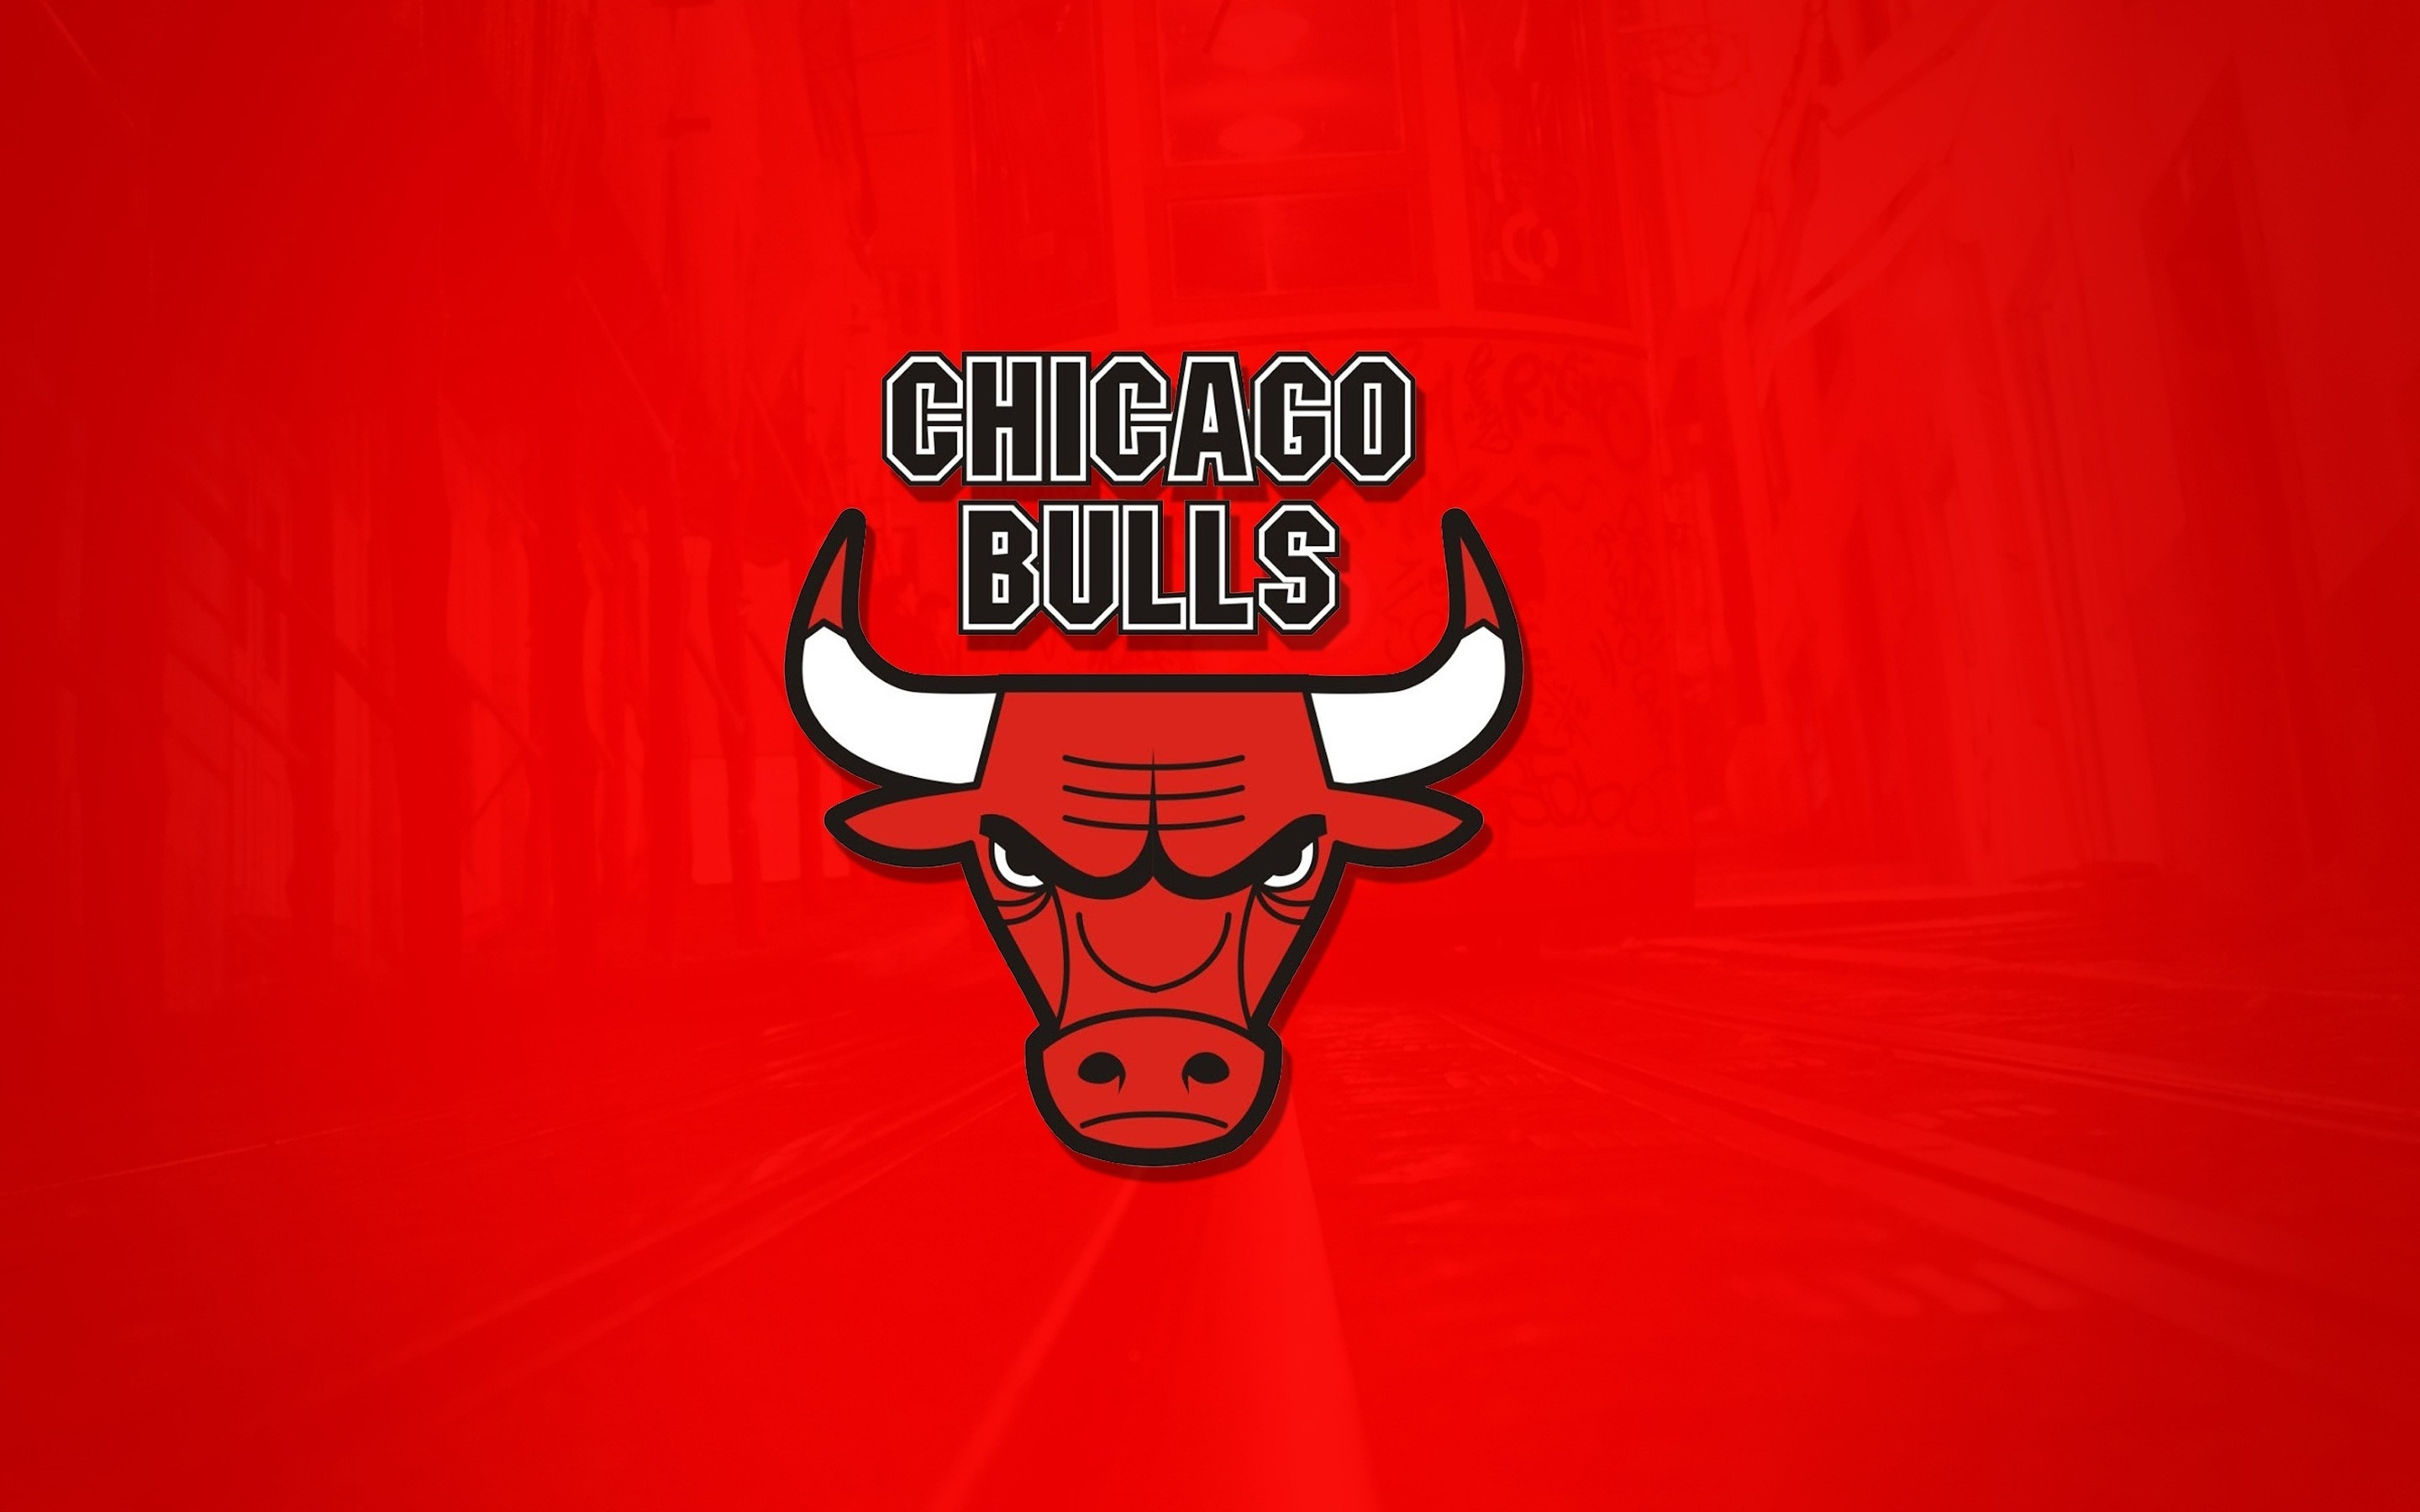 Chicago bulls wallpapers hd 81 background pictures 2880x1800 fire bull wallpaper hd new bull wallpapers hd backgrounds valid 10 new chicago bulls hd thecheapjerseys Gallery